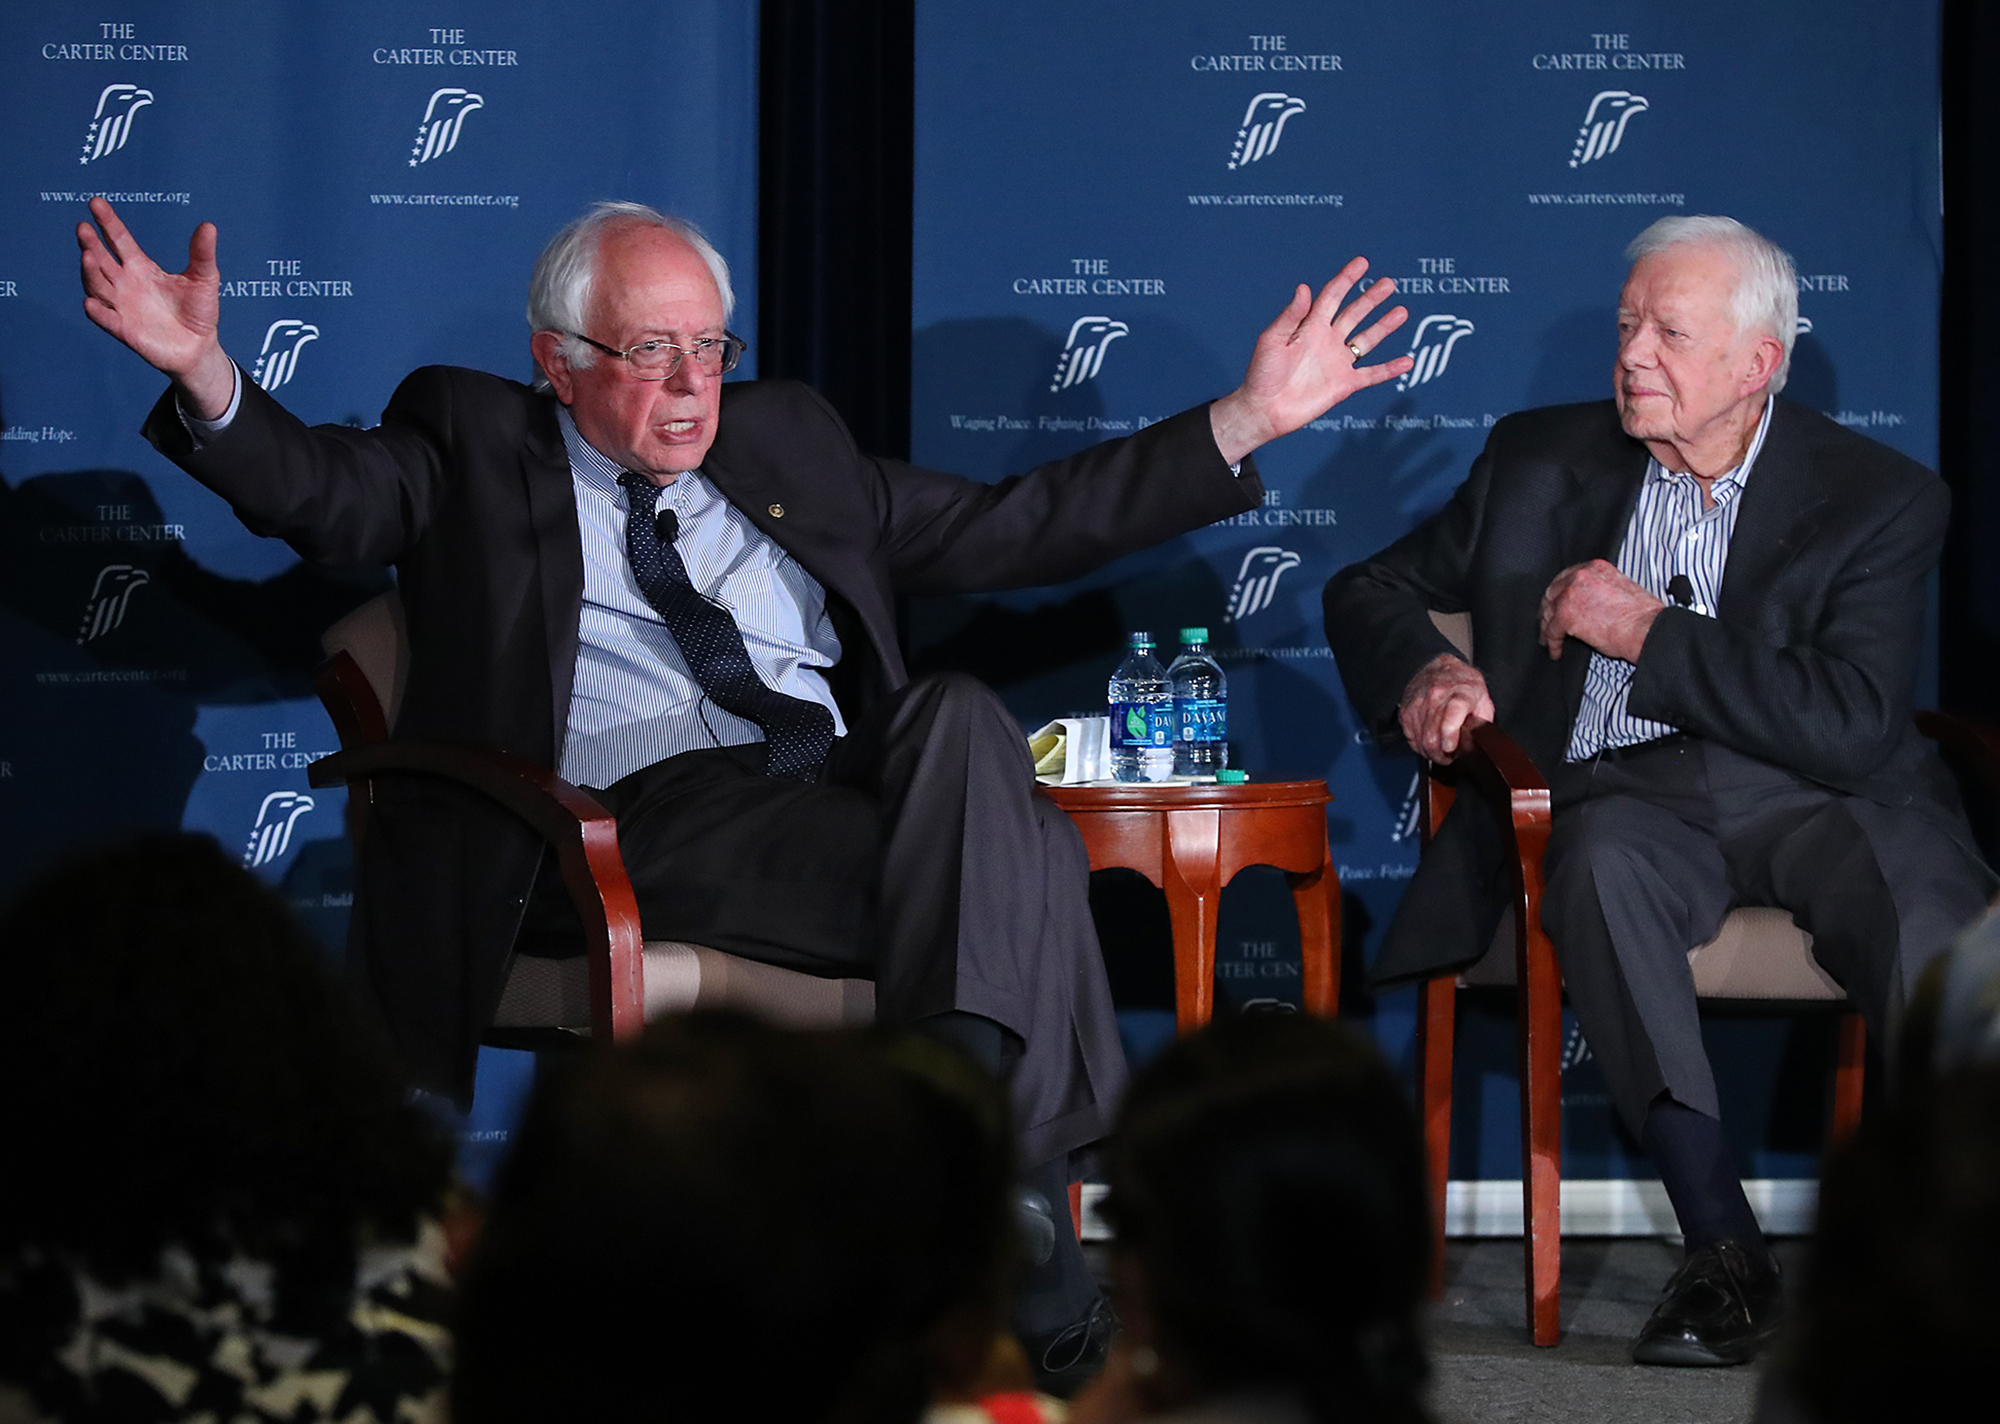 Jimmy Carter on Bernie Sanders: 'Can you all see why I voted for him?'